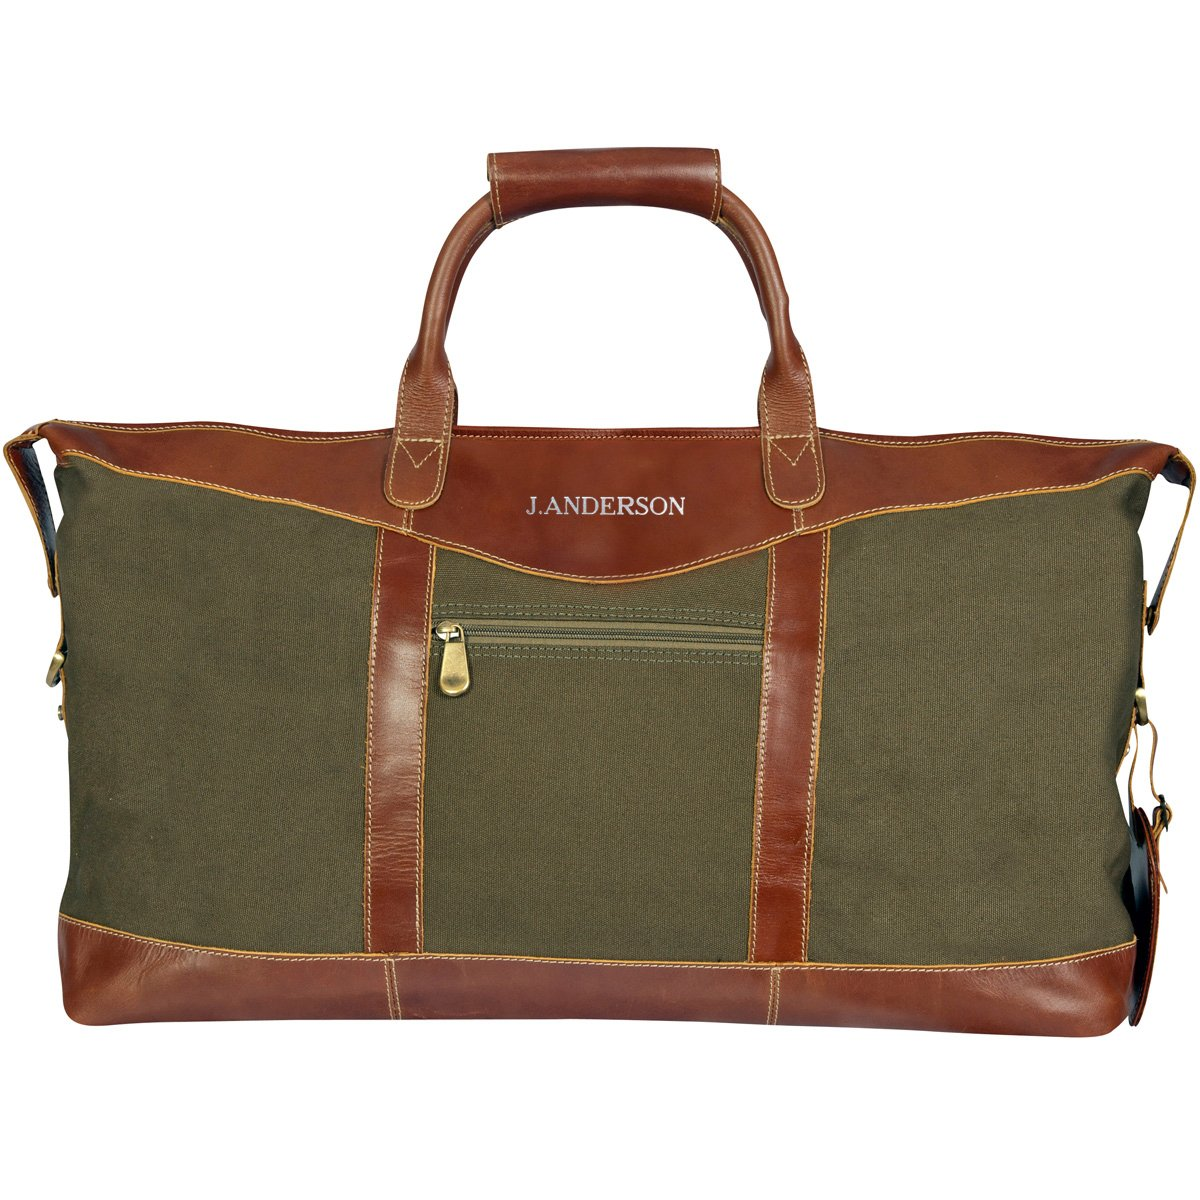 Personalized Forest Green Borello Canvas and Leather Weekender Duffel Bag - Silver